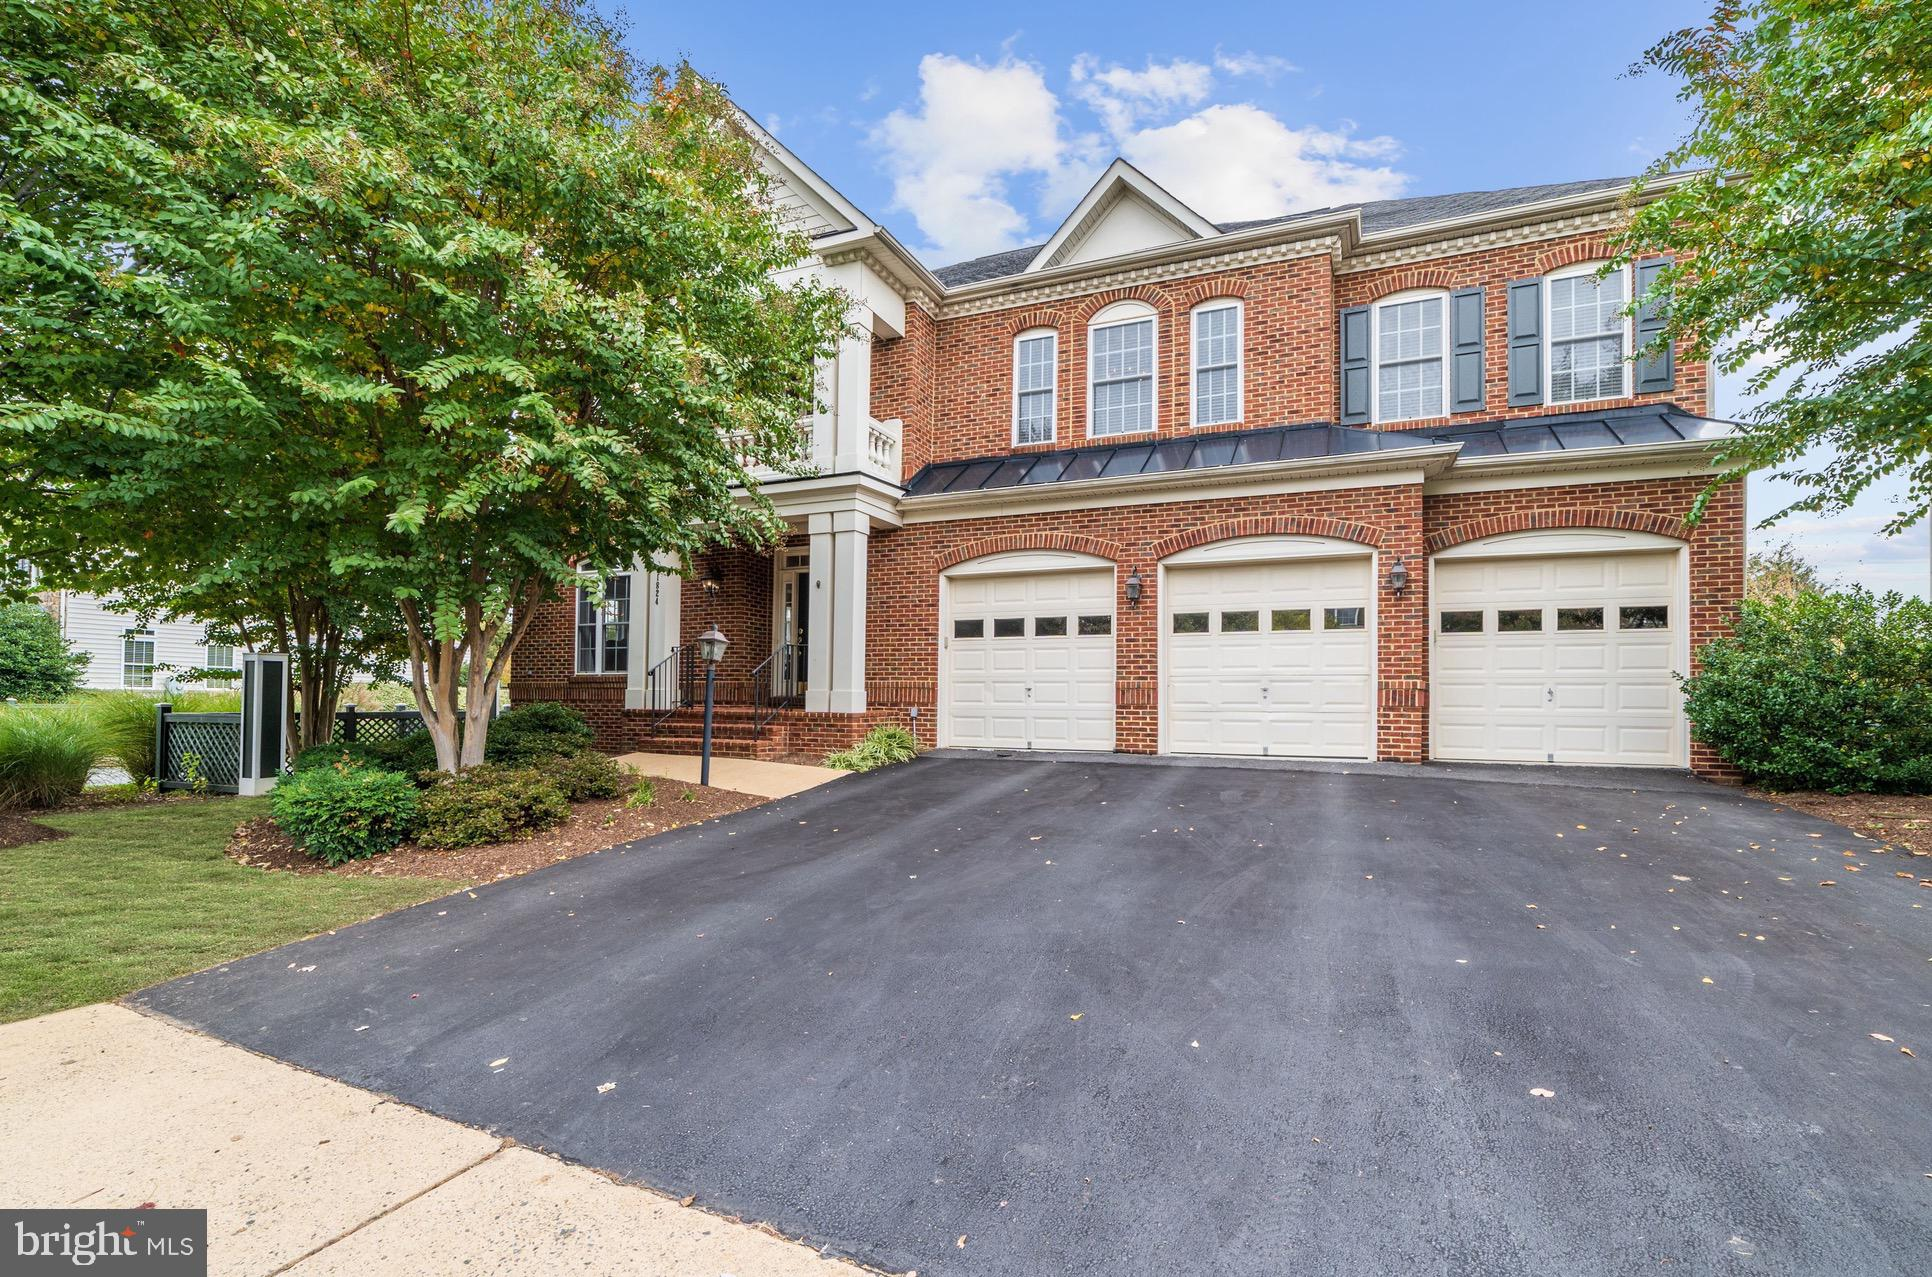 Immaculate 4 bedroom, 4~ bath Faulkner model by Van Metre with a 3-car garage in beautiful Broadlands! This lovely home invites you in with a formal living room and dining room and a grand foyer. Enjoy an eat-in gourmet kitchen with granite counters, stainless steel appliances and handy butler~s pantry, all opening to a family room with gas fireplace and on to a main level office. Upstairs, find a master suite with two walk-in closets and sitting room connected to a luxurious bath with soaking tub. Down the hall, a second bedroom with en-suite bath is followed by two more bedrooms sharing a Jack and Jill bath. The lower level features loads of storage along with media room, game room, fitness room and a full bath. All this along with Broadlands community swimming pools, tot lots, tennis courts and nature trails. Easy access to Dulles Toll Road, Dulles Airport, the new Ashburn Metro Station and Historic Leesburg and just moments to Broadlands Village Center and Broadlands Market Place shops, dining and entertainment!